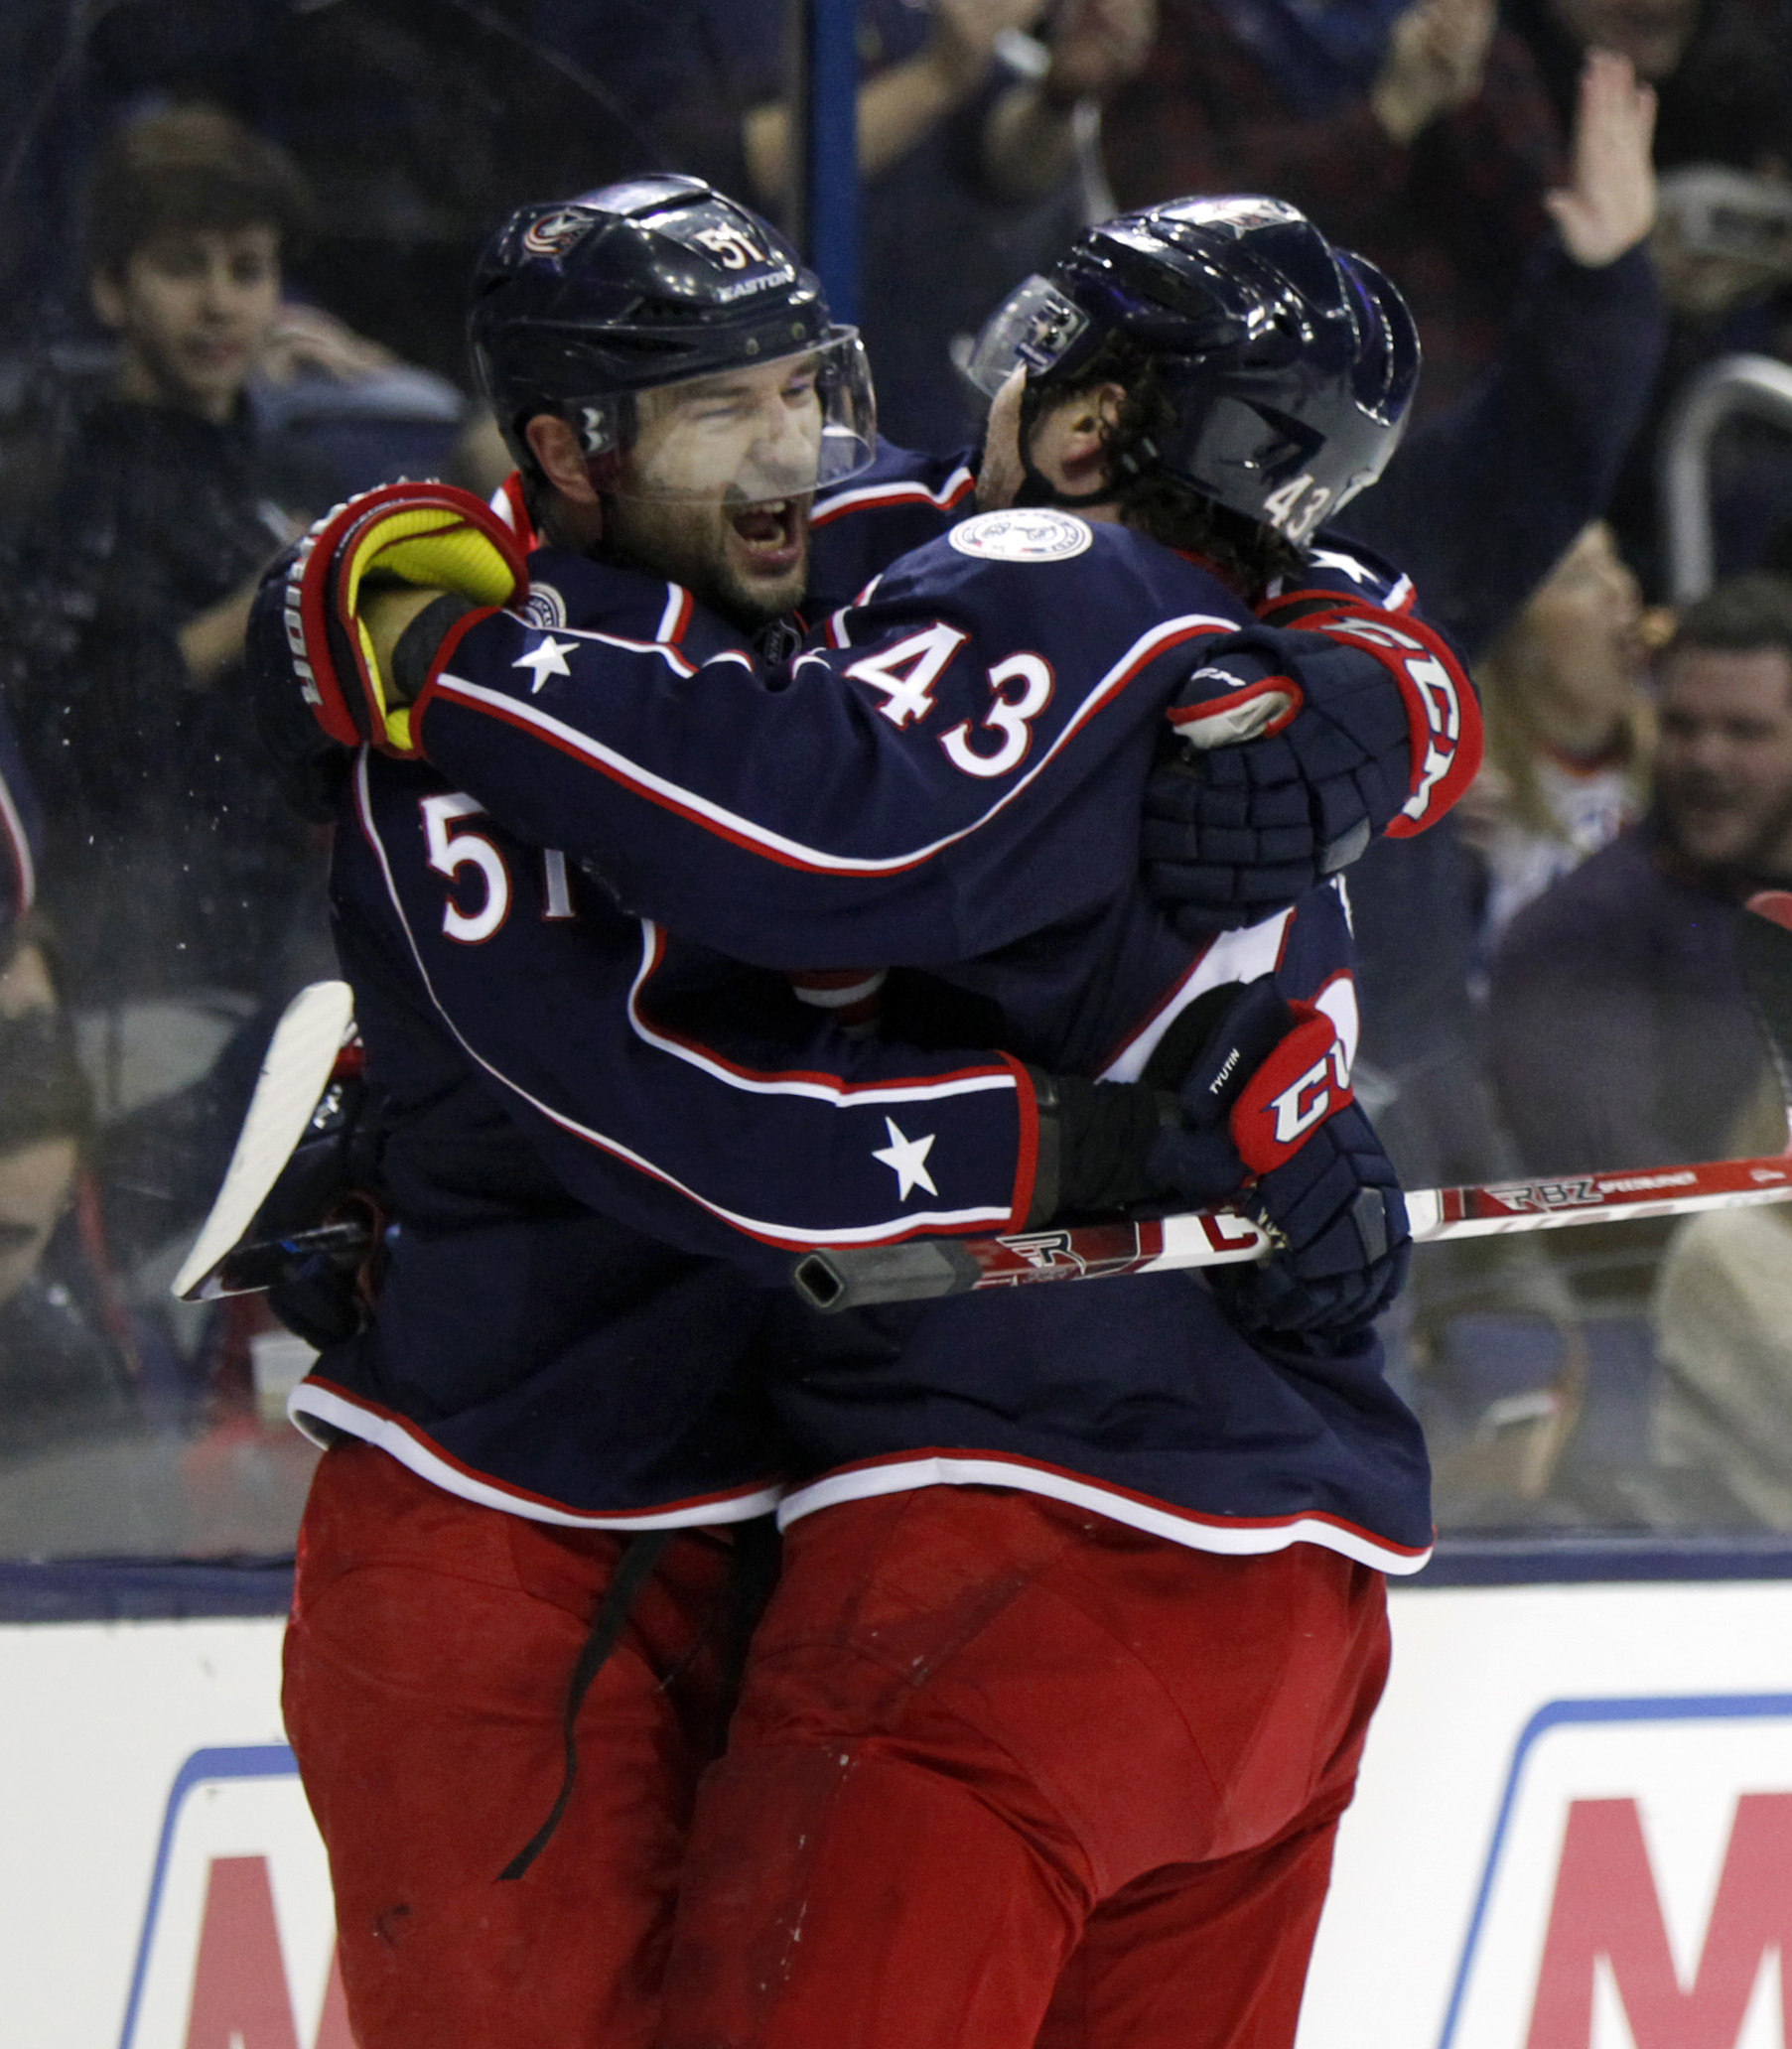 Columbus Blue Jackets' Fedor Tyutin, left, of Russia, celebrates his goal against the Edmonton Oilers with teammate Scott Hartnell during the second period of an NHL hockey game in Columbus, Ohio, Friday, March 4, 2016. (AP Photo/Paul Vernon)